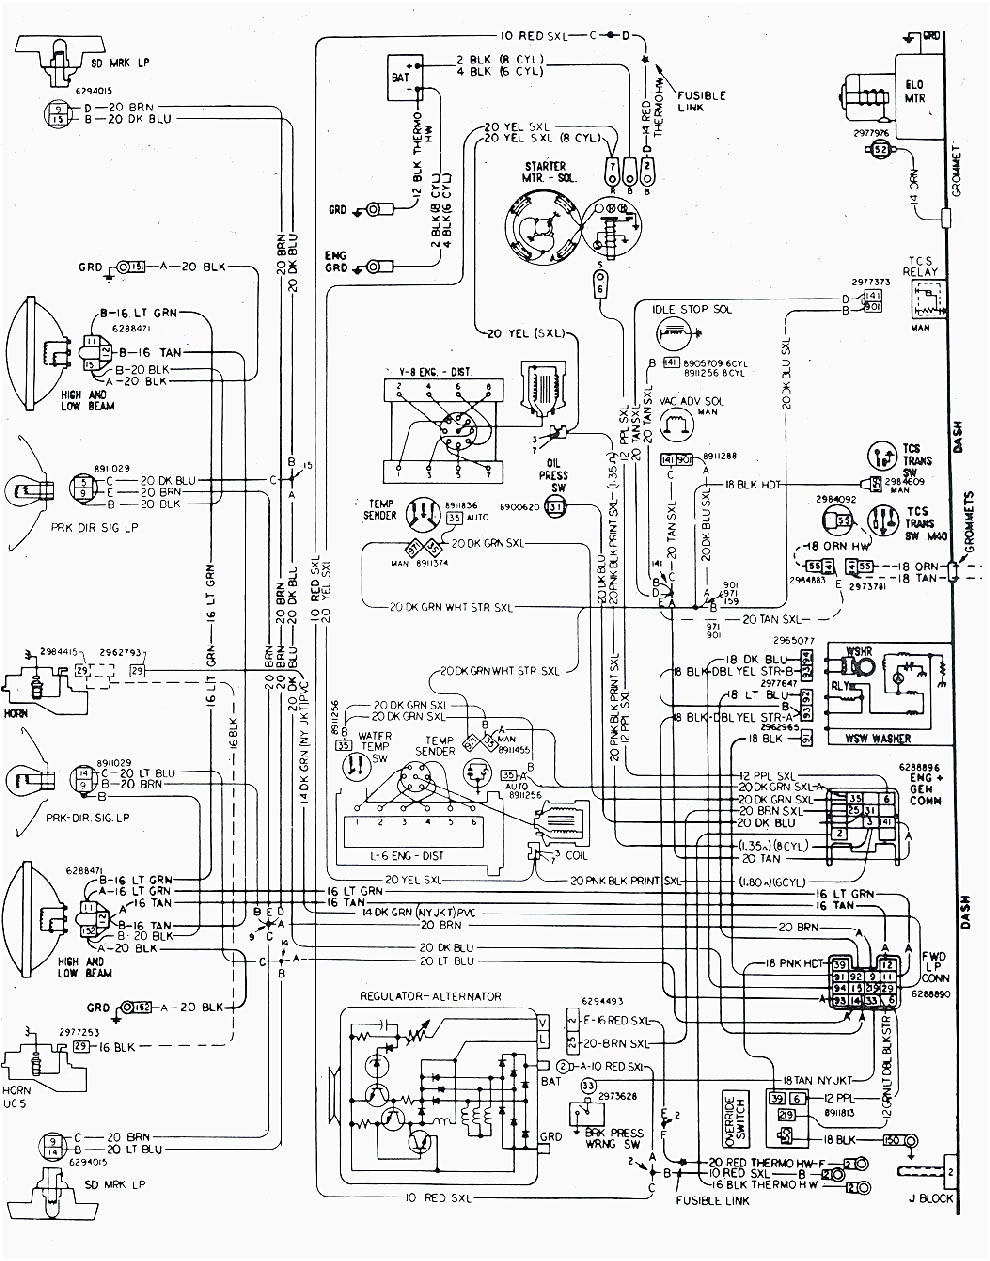 [DIAGRAM] 2001 Camaro Ss Wiring Diagram FULL Version HD